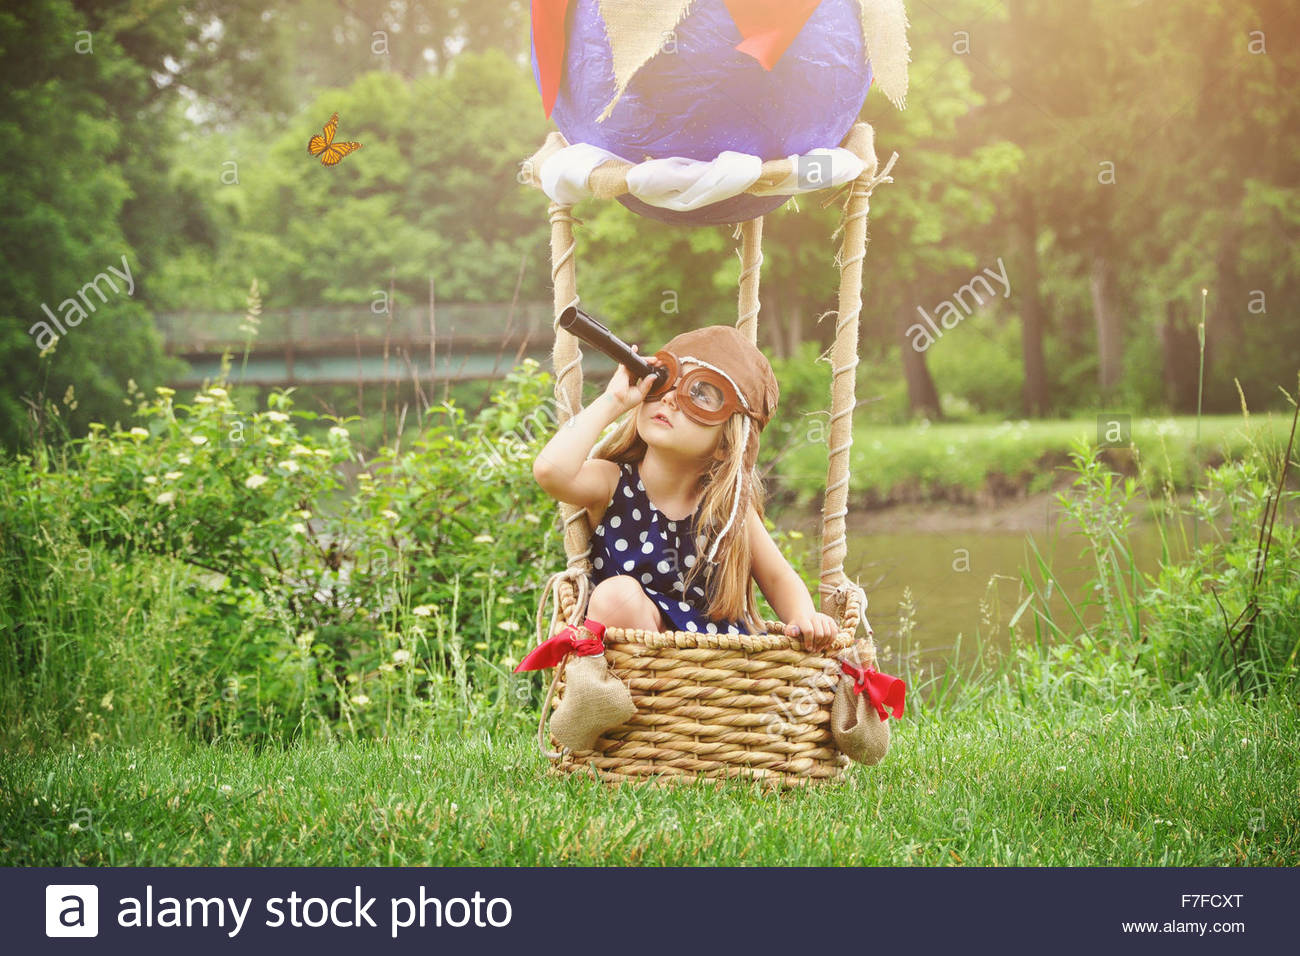 A little girl is sitting in a hot air balloon basket in the park pretending to travel and fly with a pilot hat on. - Stock Image